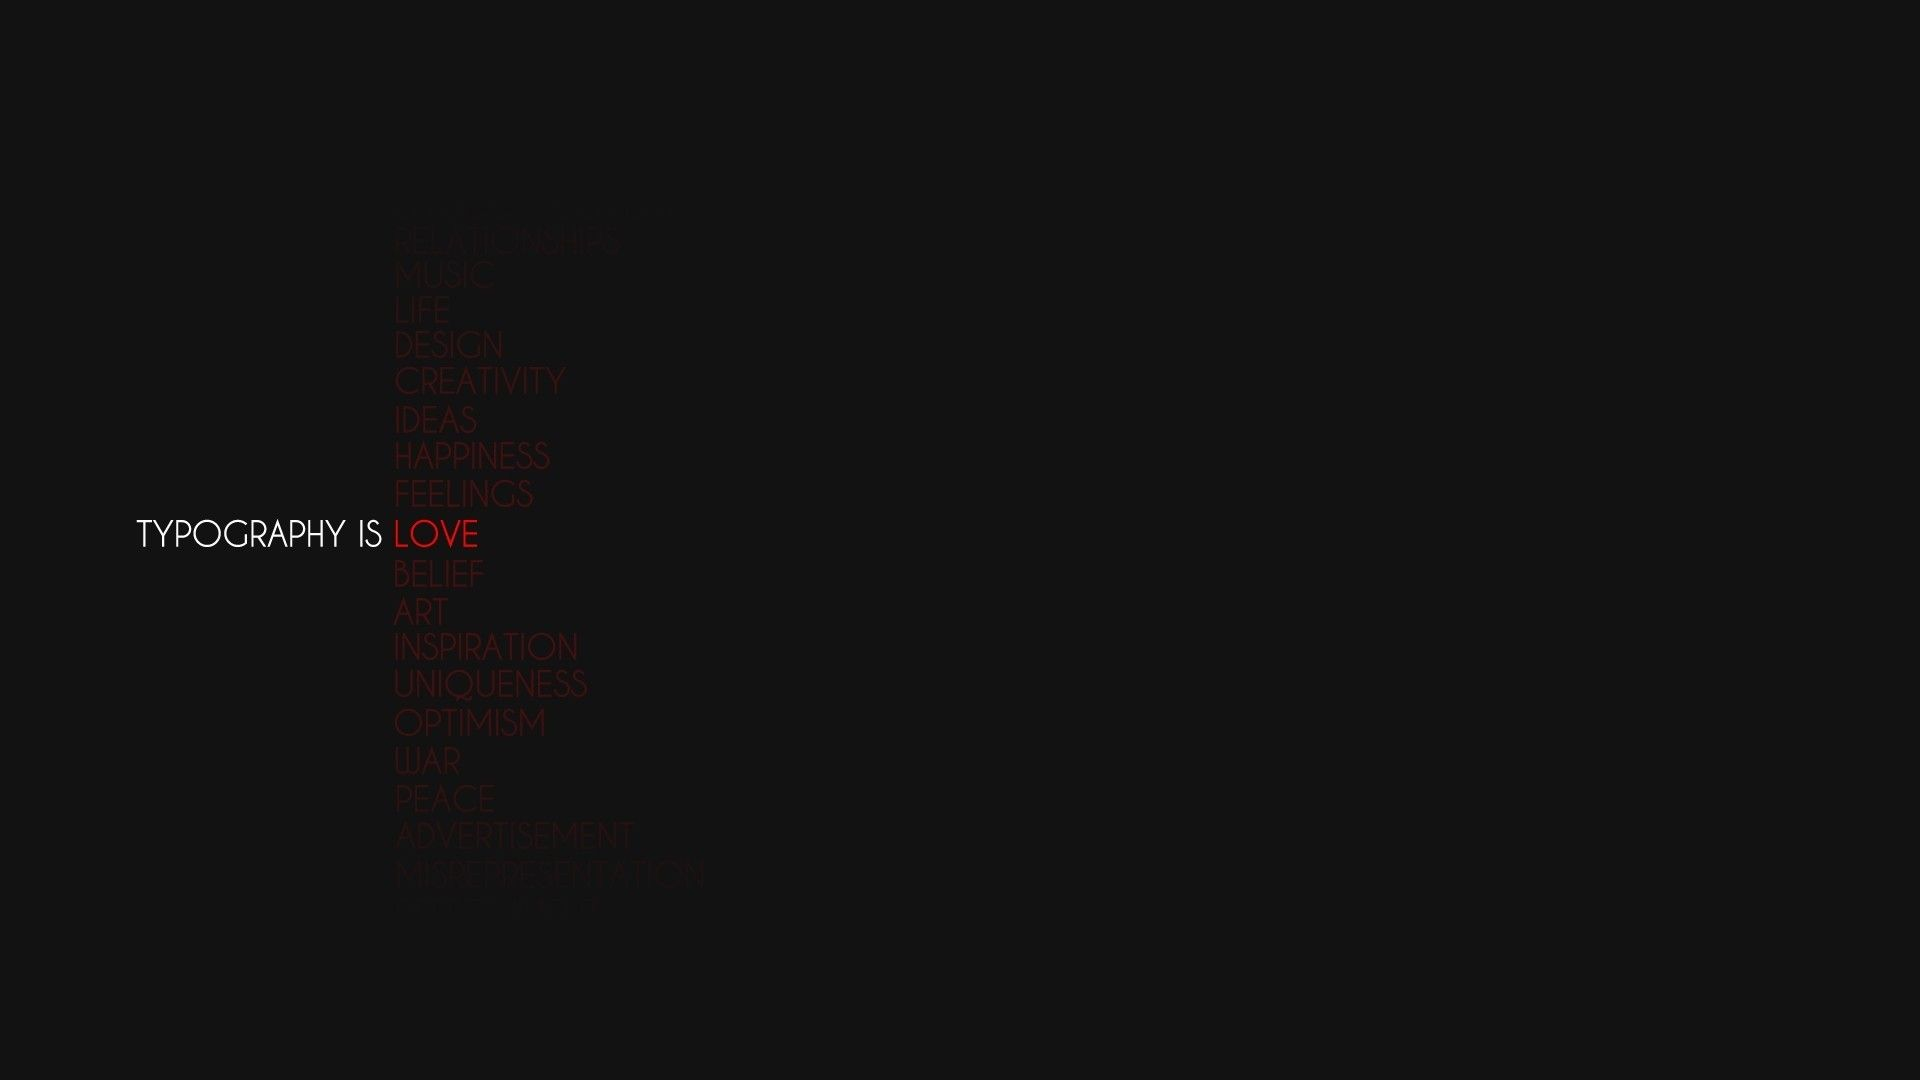 1920x1080 1920x1080 Wallpaper Typography Is Love Black Black Background Sign Reflections Love Wallpaper Best Background Images Black Love